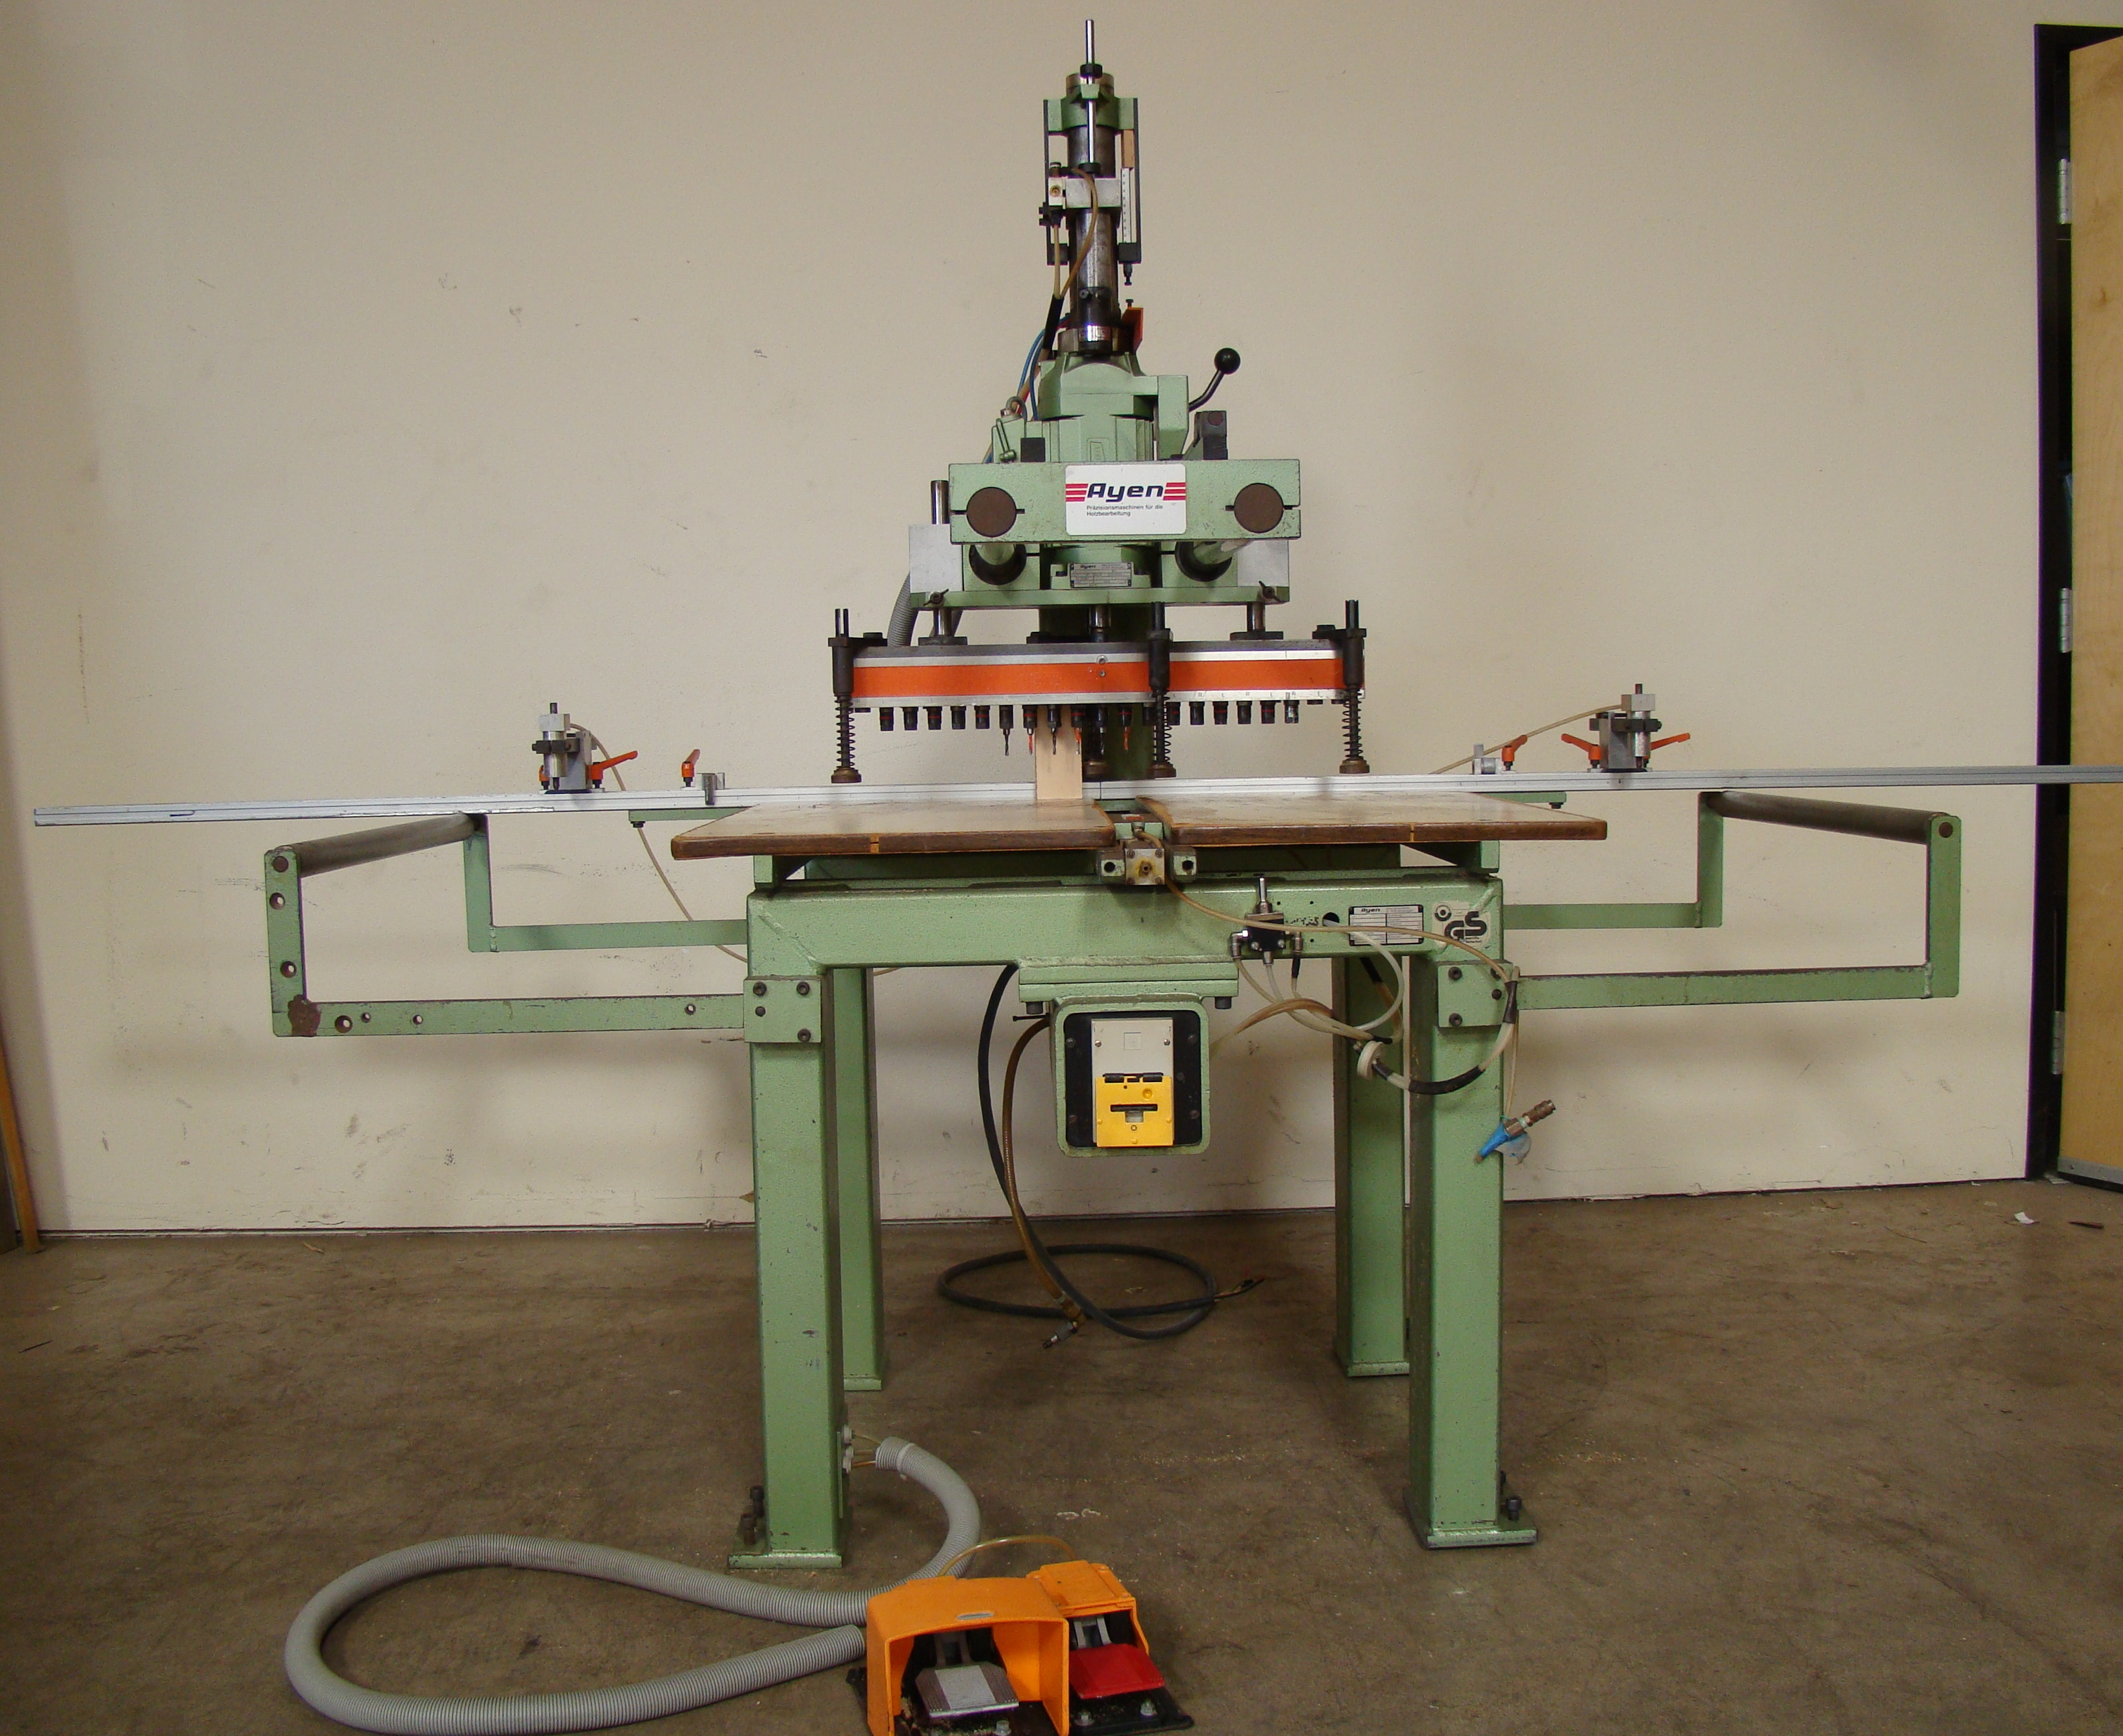 Ayen 21 Spindle Pneumatic Line Boring Machine with foot pedal, 230/460 Volt 3PH